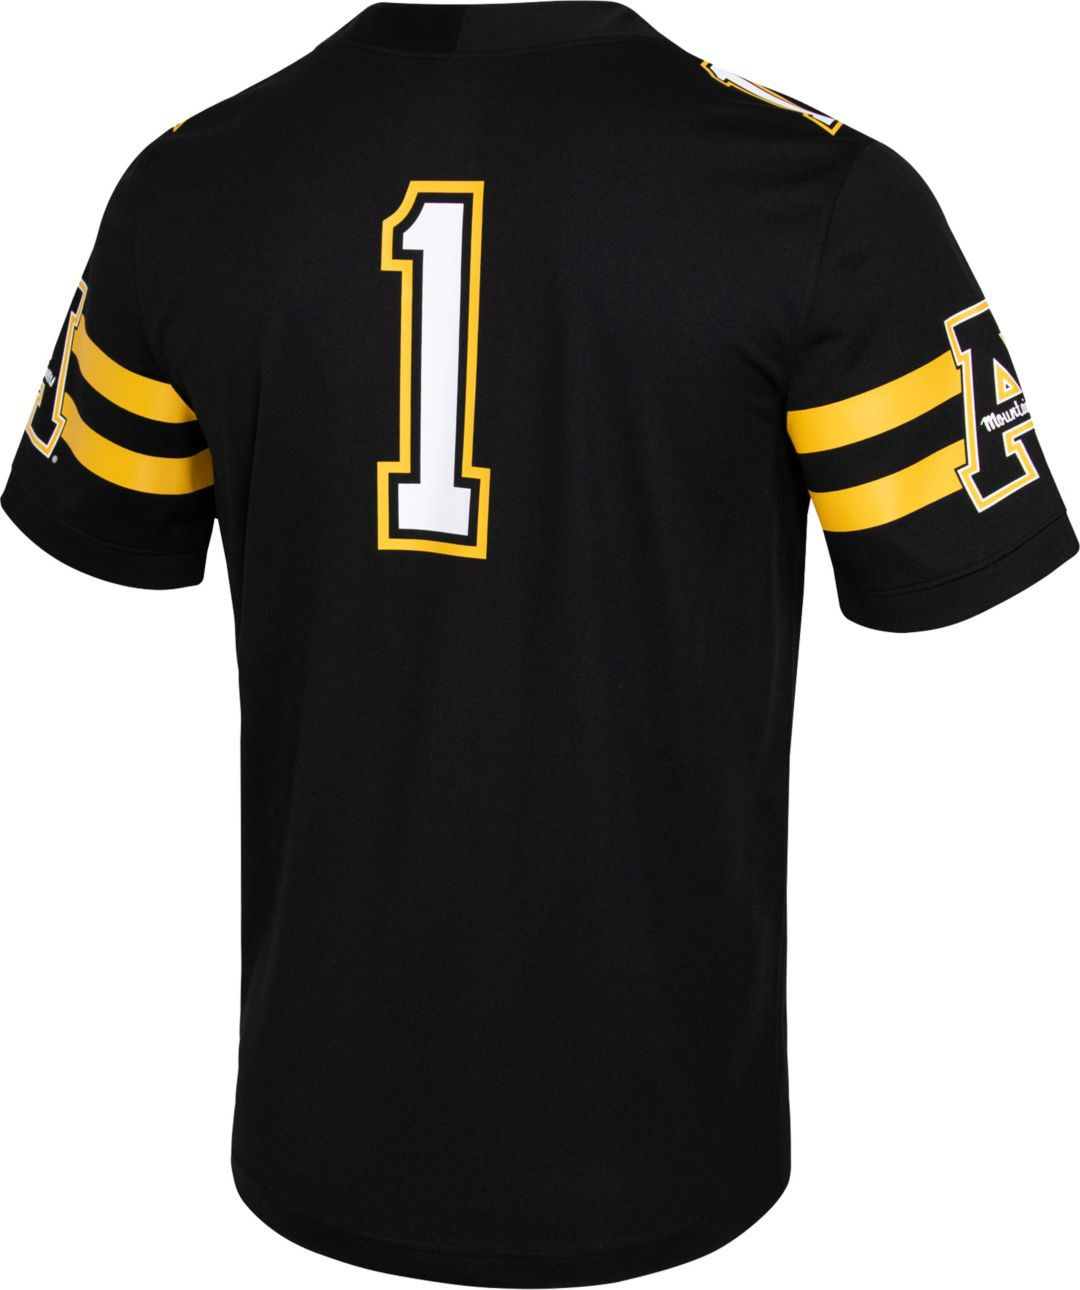 new arrival 9f831 25912 Nike Men's Appalachian State Mountaineers #1 Dri-FIT Game Football Black  Jersey